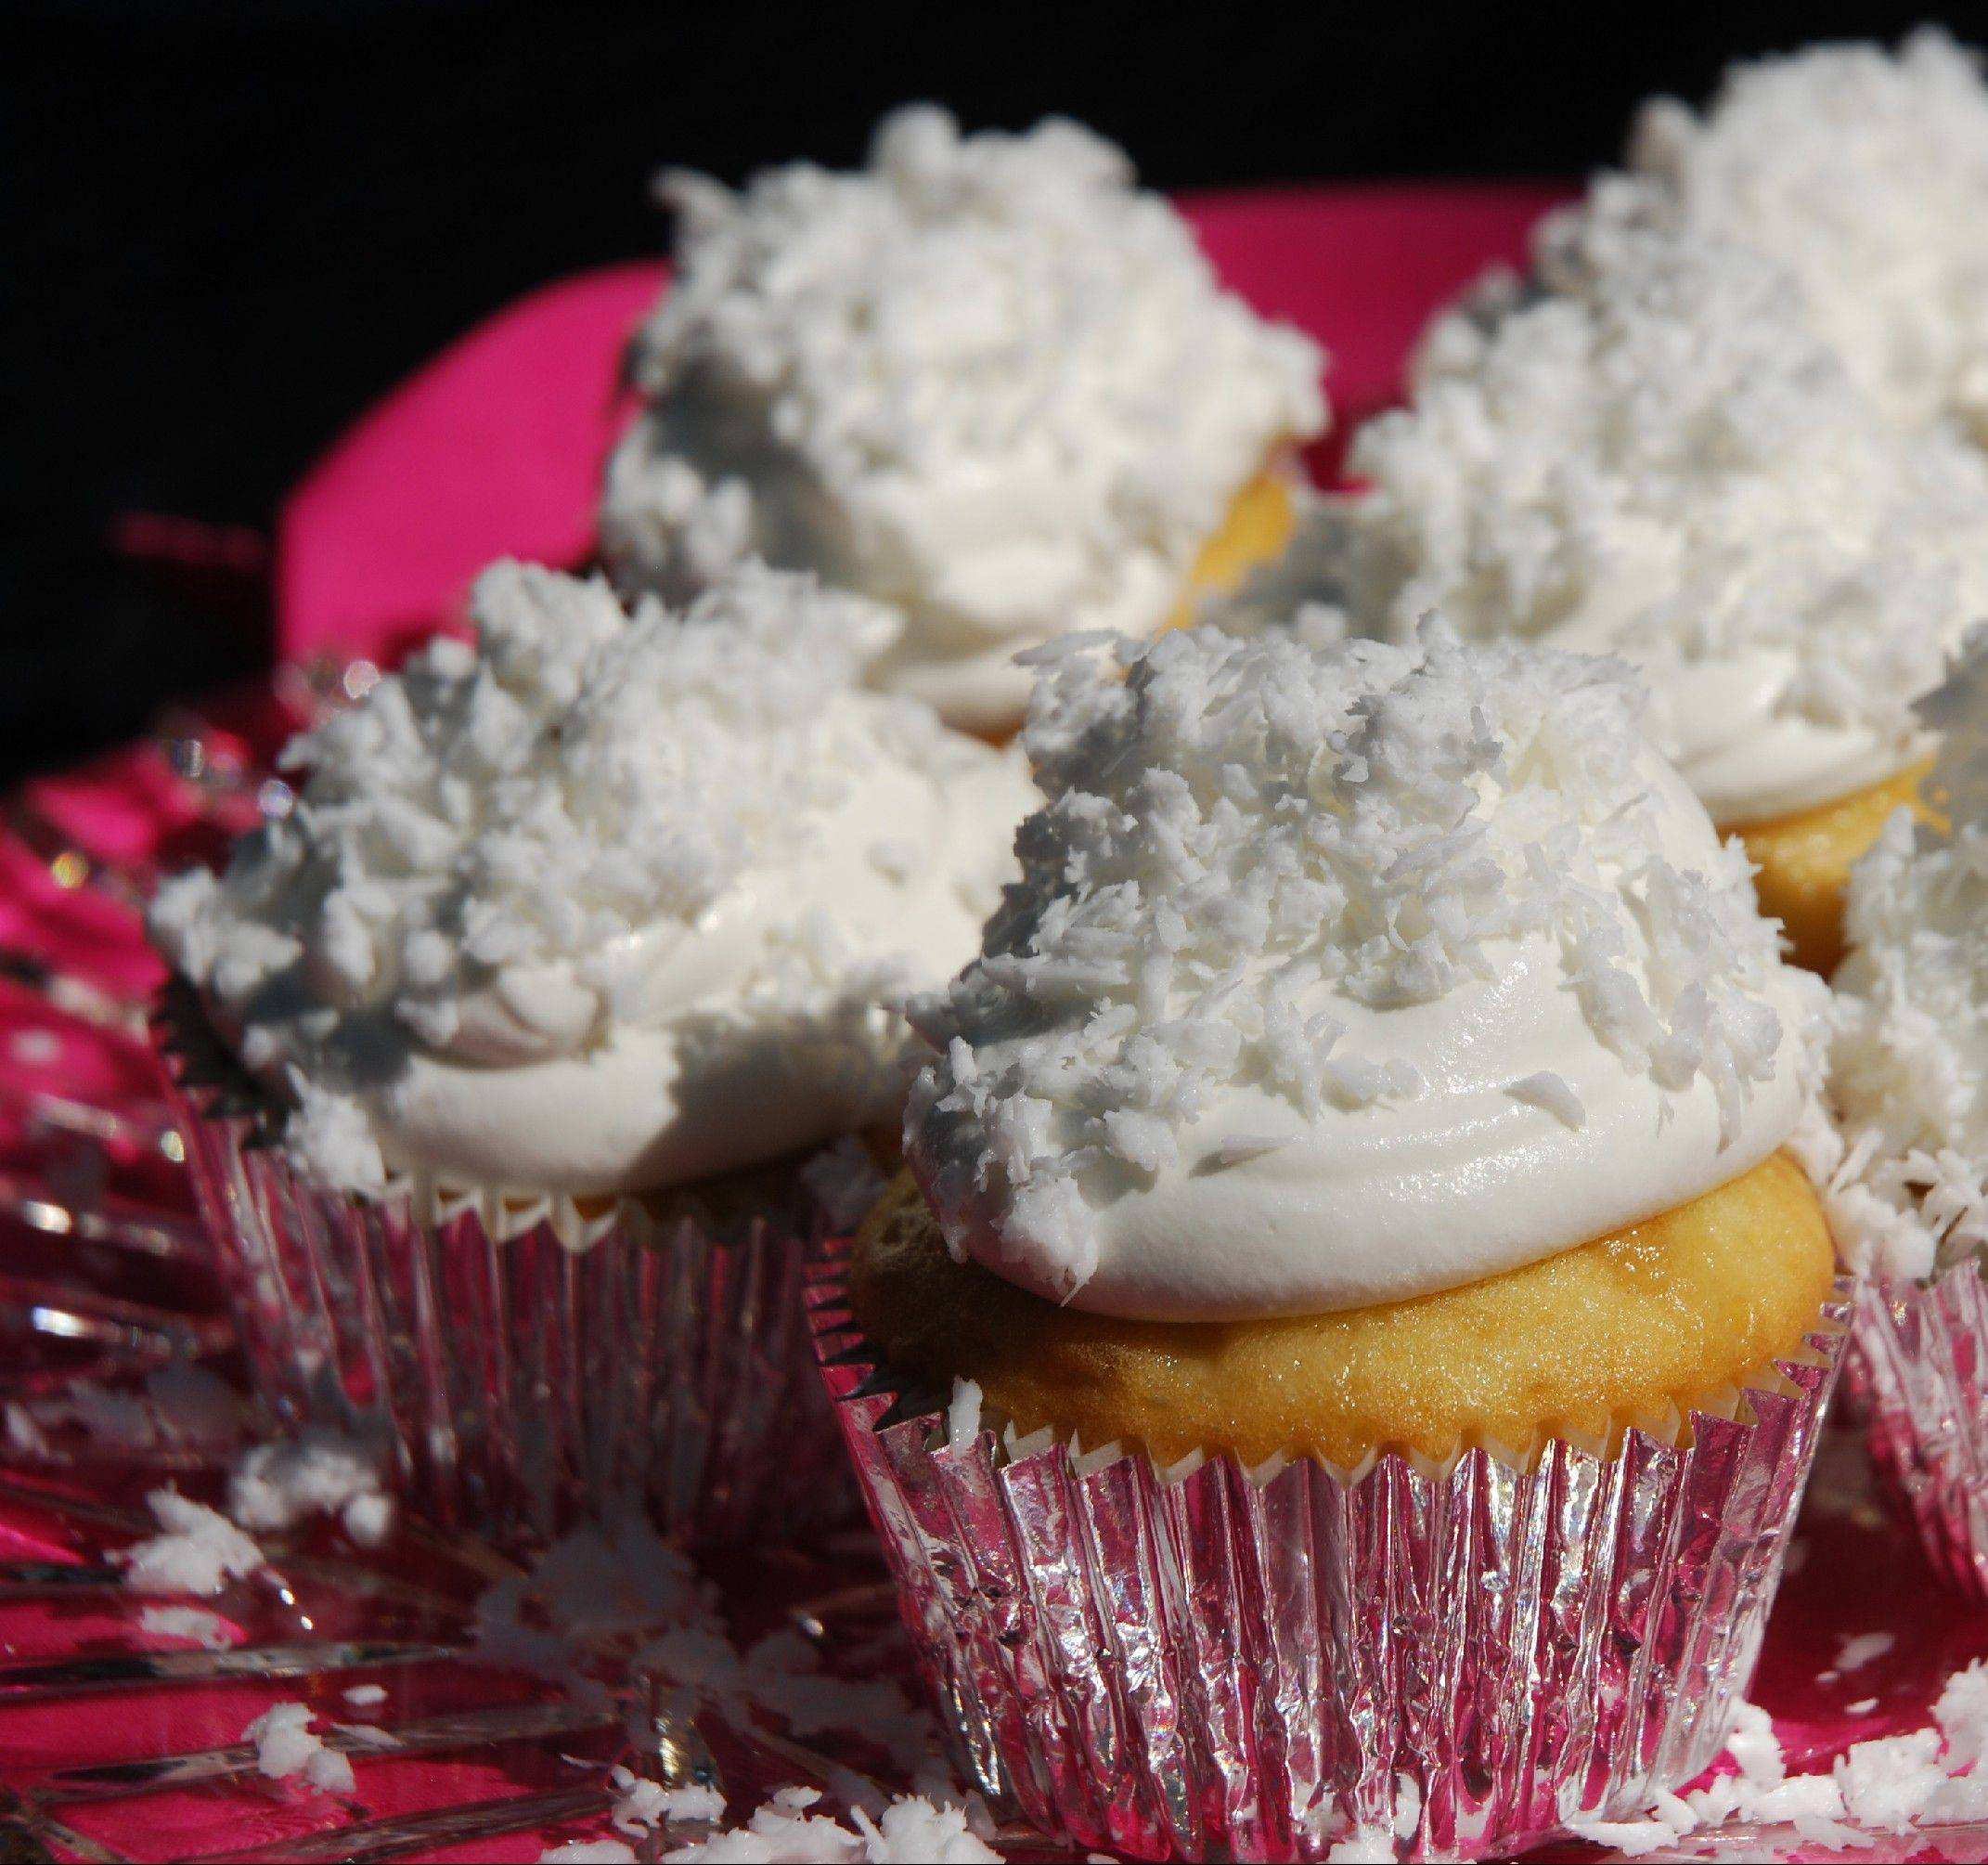 For the same price as one gourmet shop cupcake you can bake two dozen of these Cuckoo Coconut Cupcakes at home.